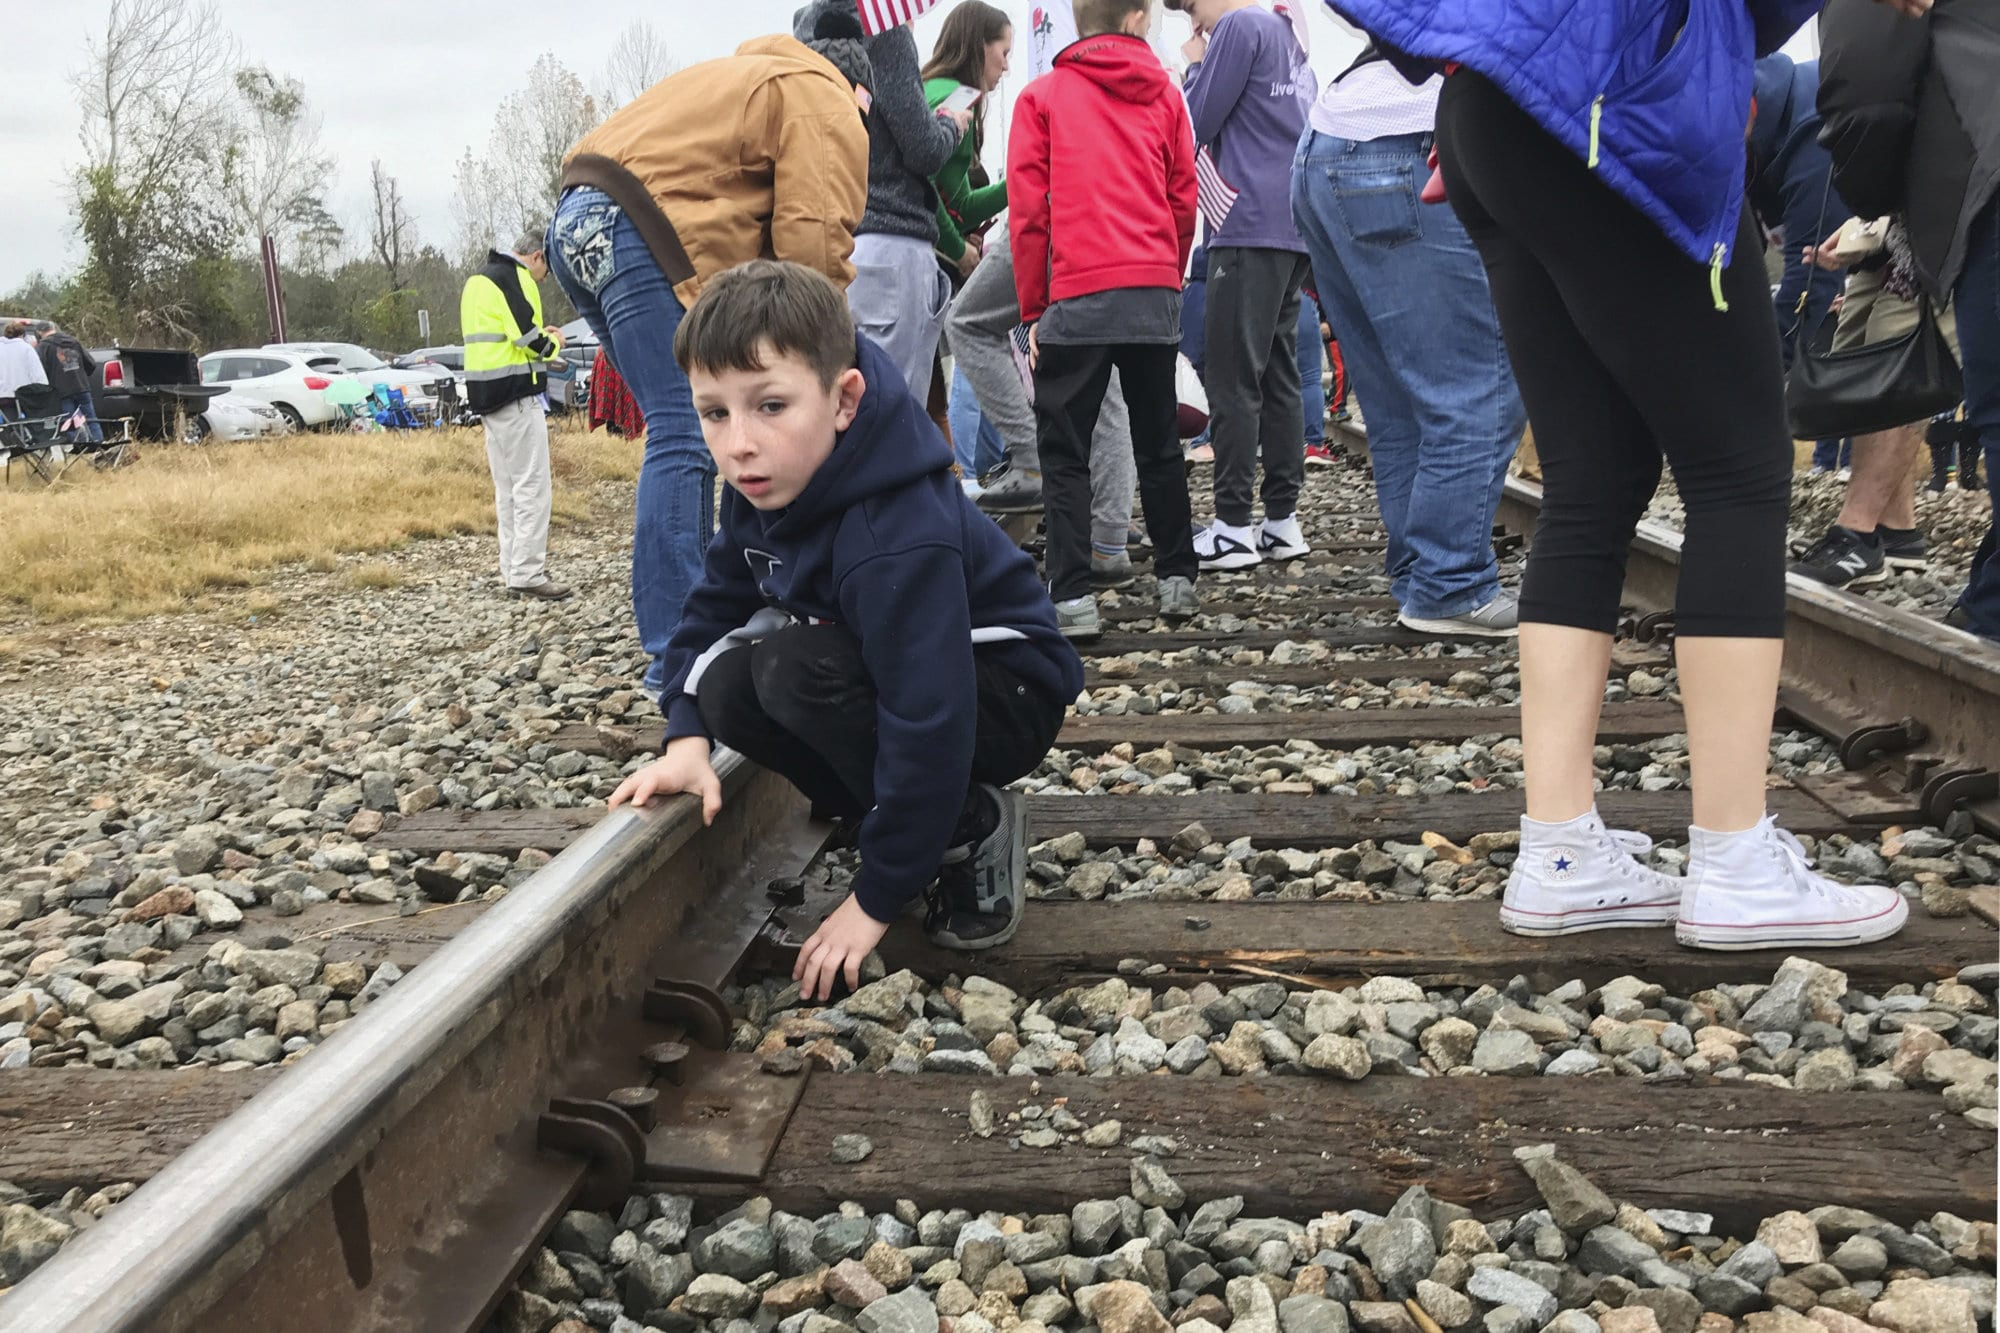 Steven Lowry, 7, picks through the rocks underneath the train tracks moments after the memorial train for President George H.W. Bush had passed through Pinehurst, Texas, on Thursday, Dec. 6, 2018. Many people who watched the train pass by took rocks or coins that were flattened by the train as keepsakes. (AP Photo/Nomaan Merchant)